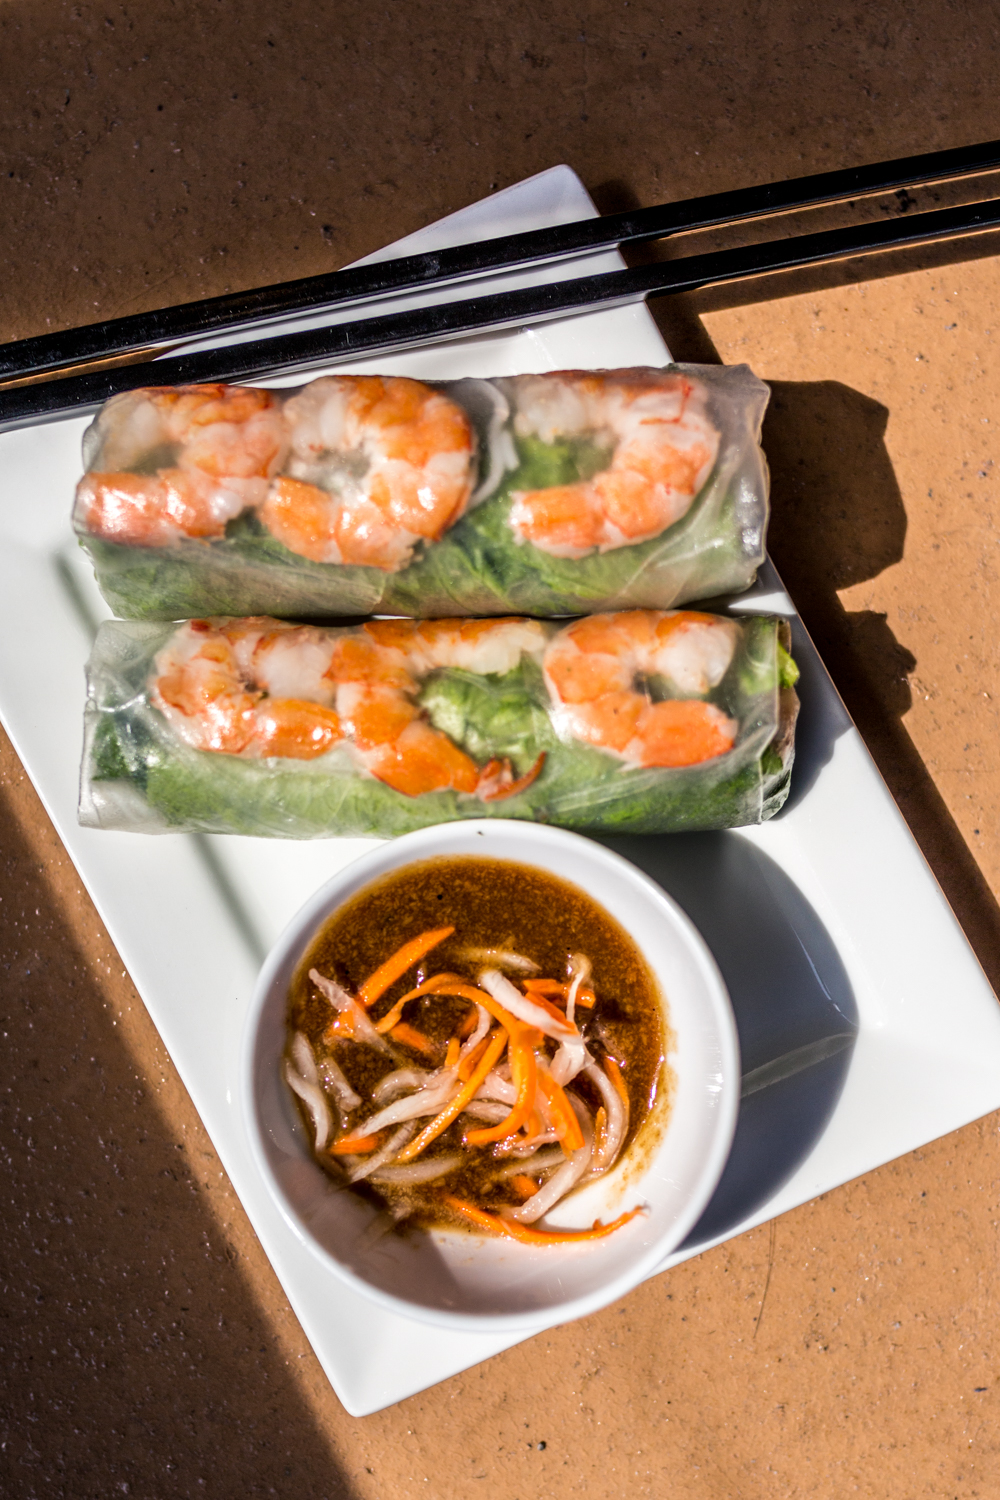 Spring rolls: fresh vermicelli noodles, pork, shrimp, bean sprouts, lettuce, herbs, and served with a peanut dipping sauce / Image: Catherine Viox{ }// Published: 9.28.19